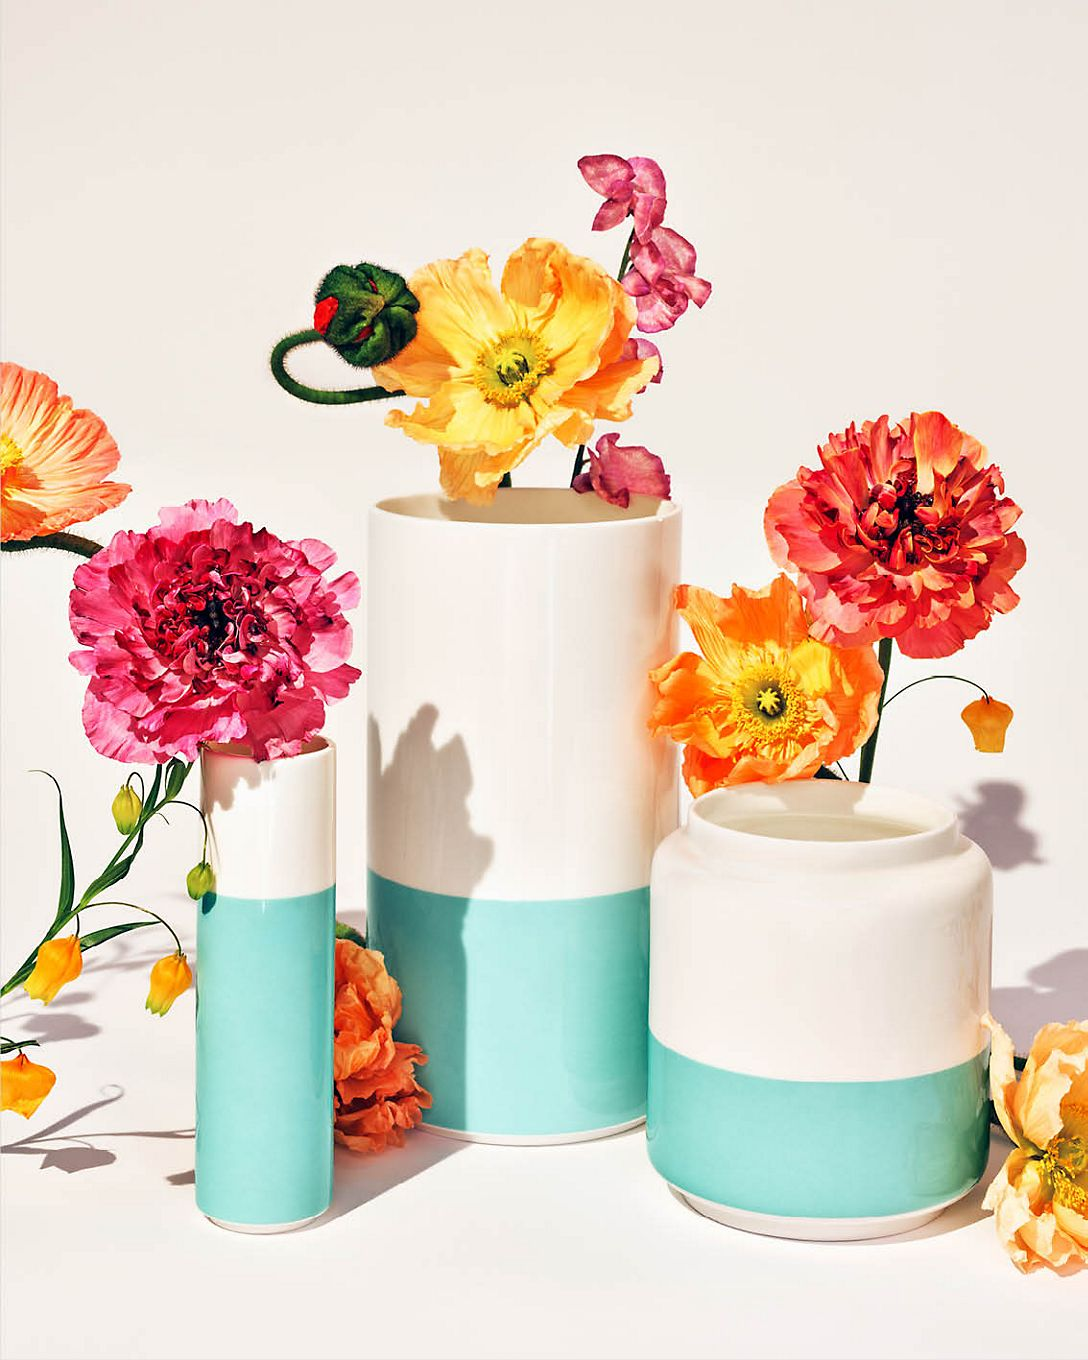 Shop Tiffany & Co. Color Block Vases